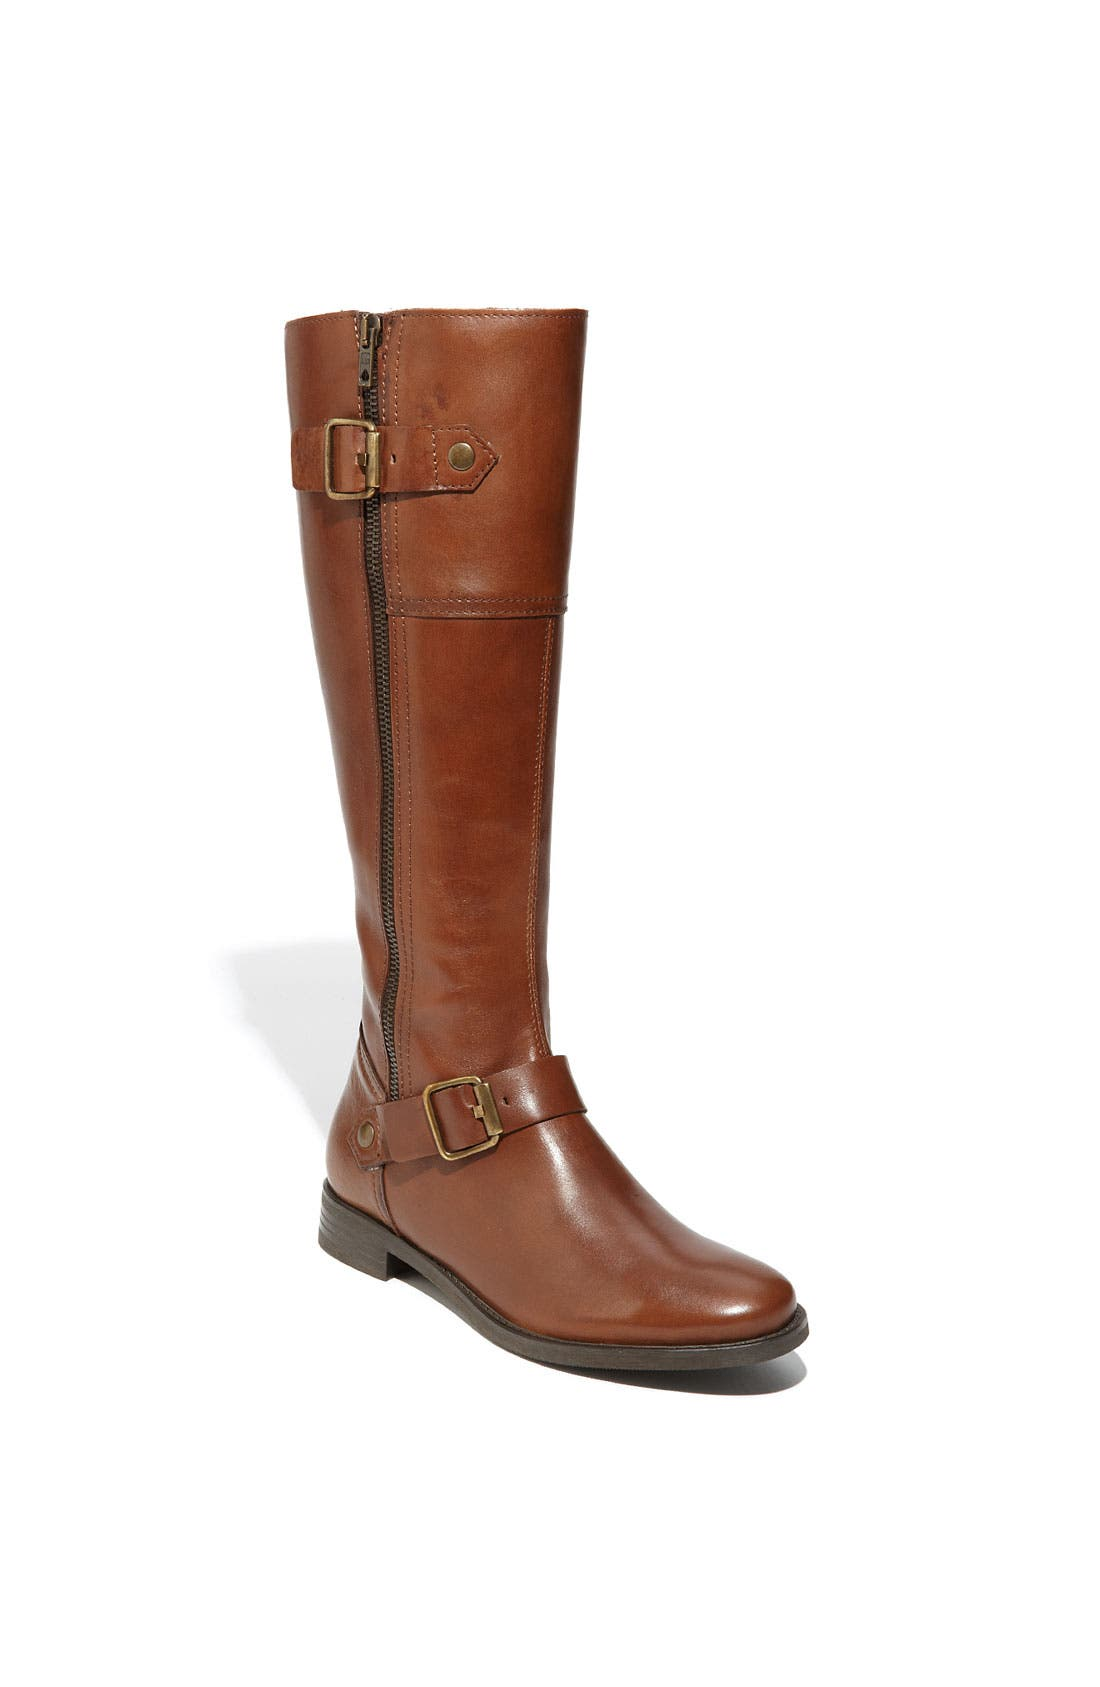 Main Image - ALDO 'Roediger Riding' Boot